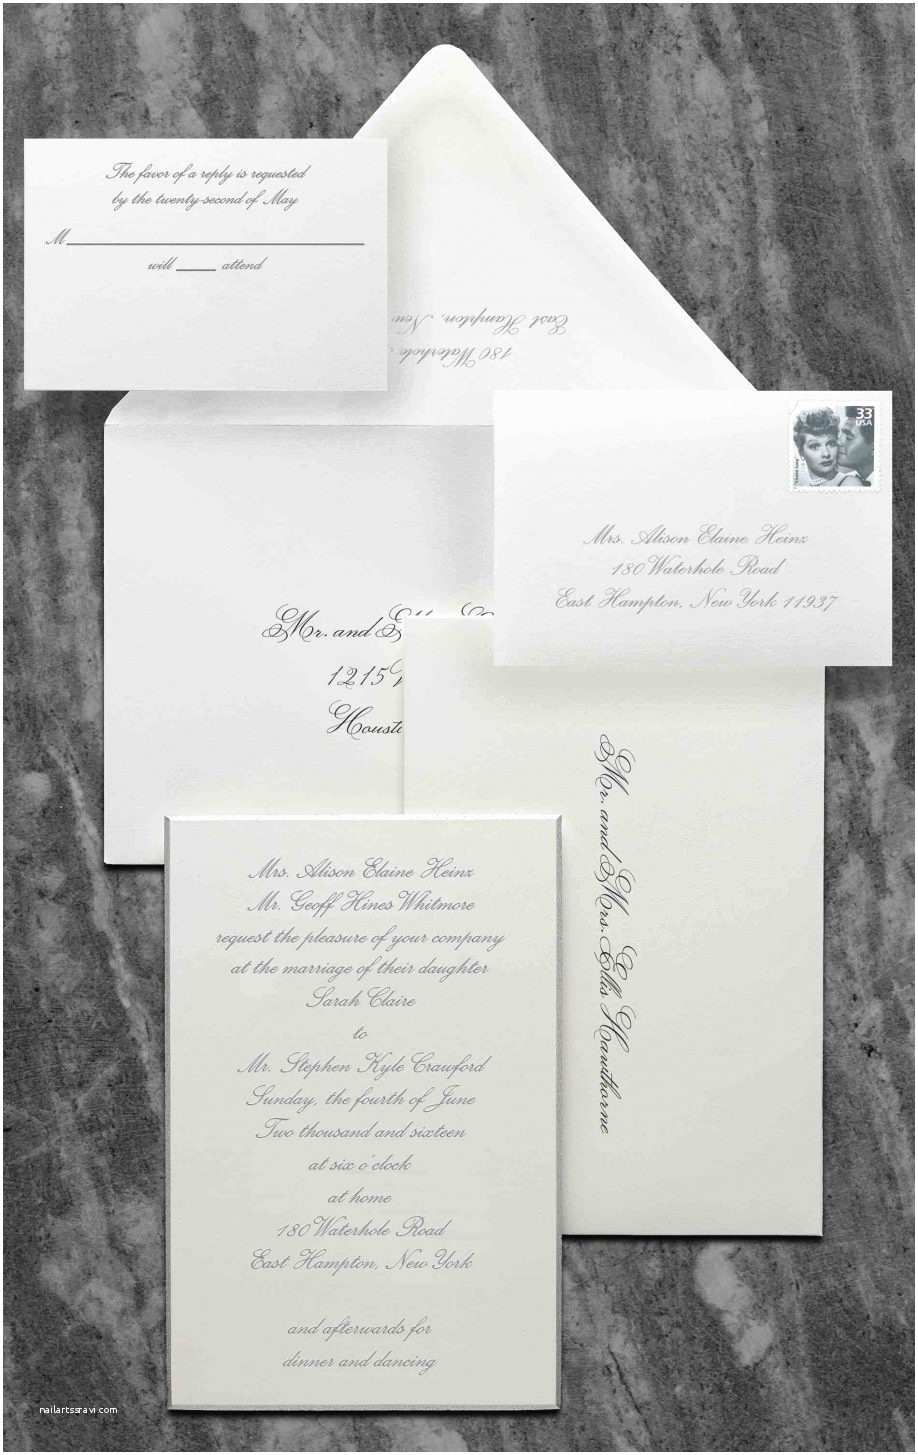 Wedding Invitations with Response Cards and Envelopes Wedding Invitations with Response Cards and Envelopes